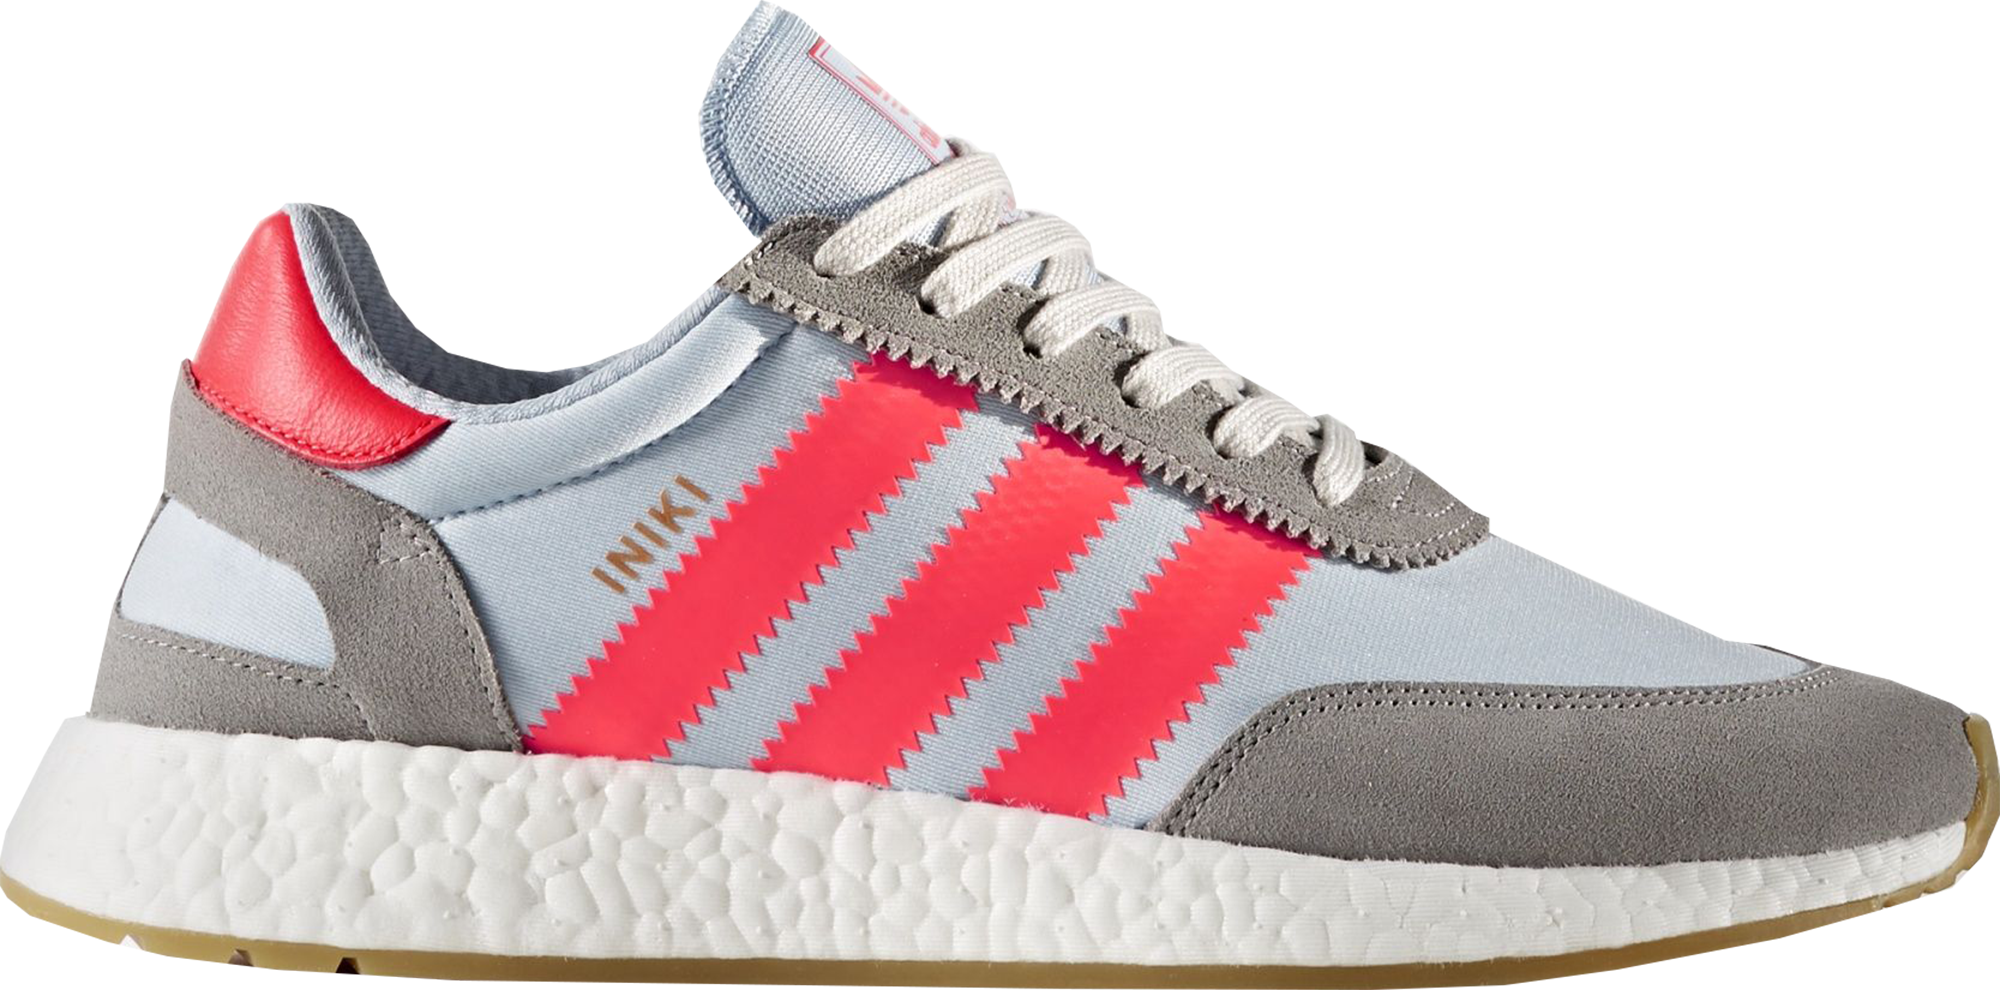 official photos best sneakers cost charm adidas Iniki Runner Grey Turbo Gum - StockX News